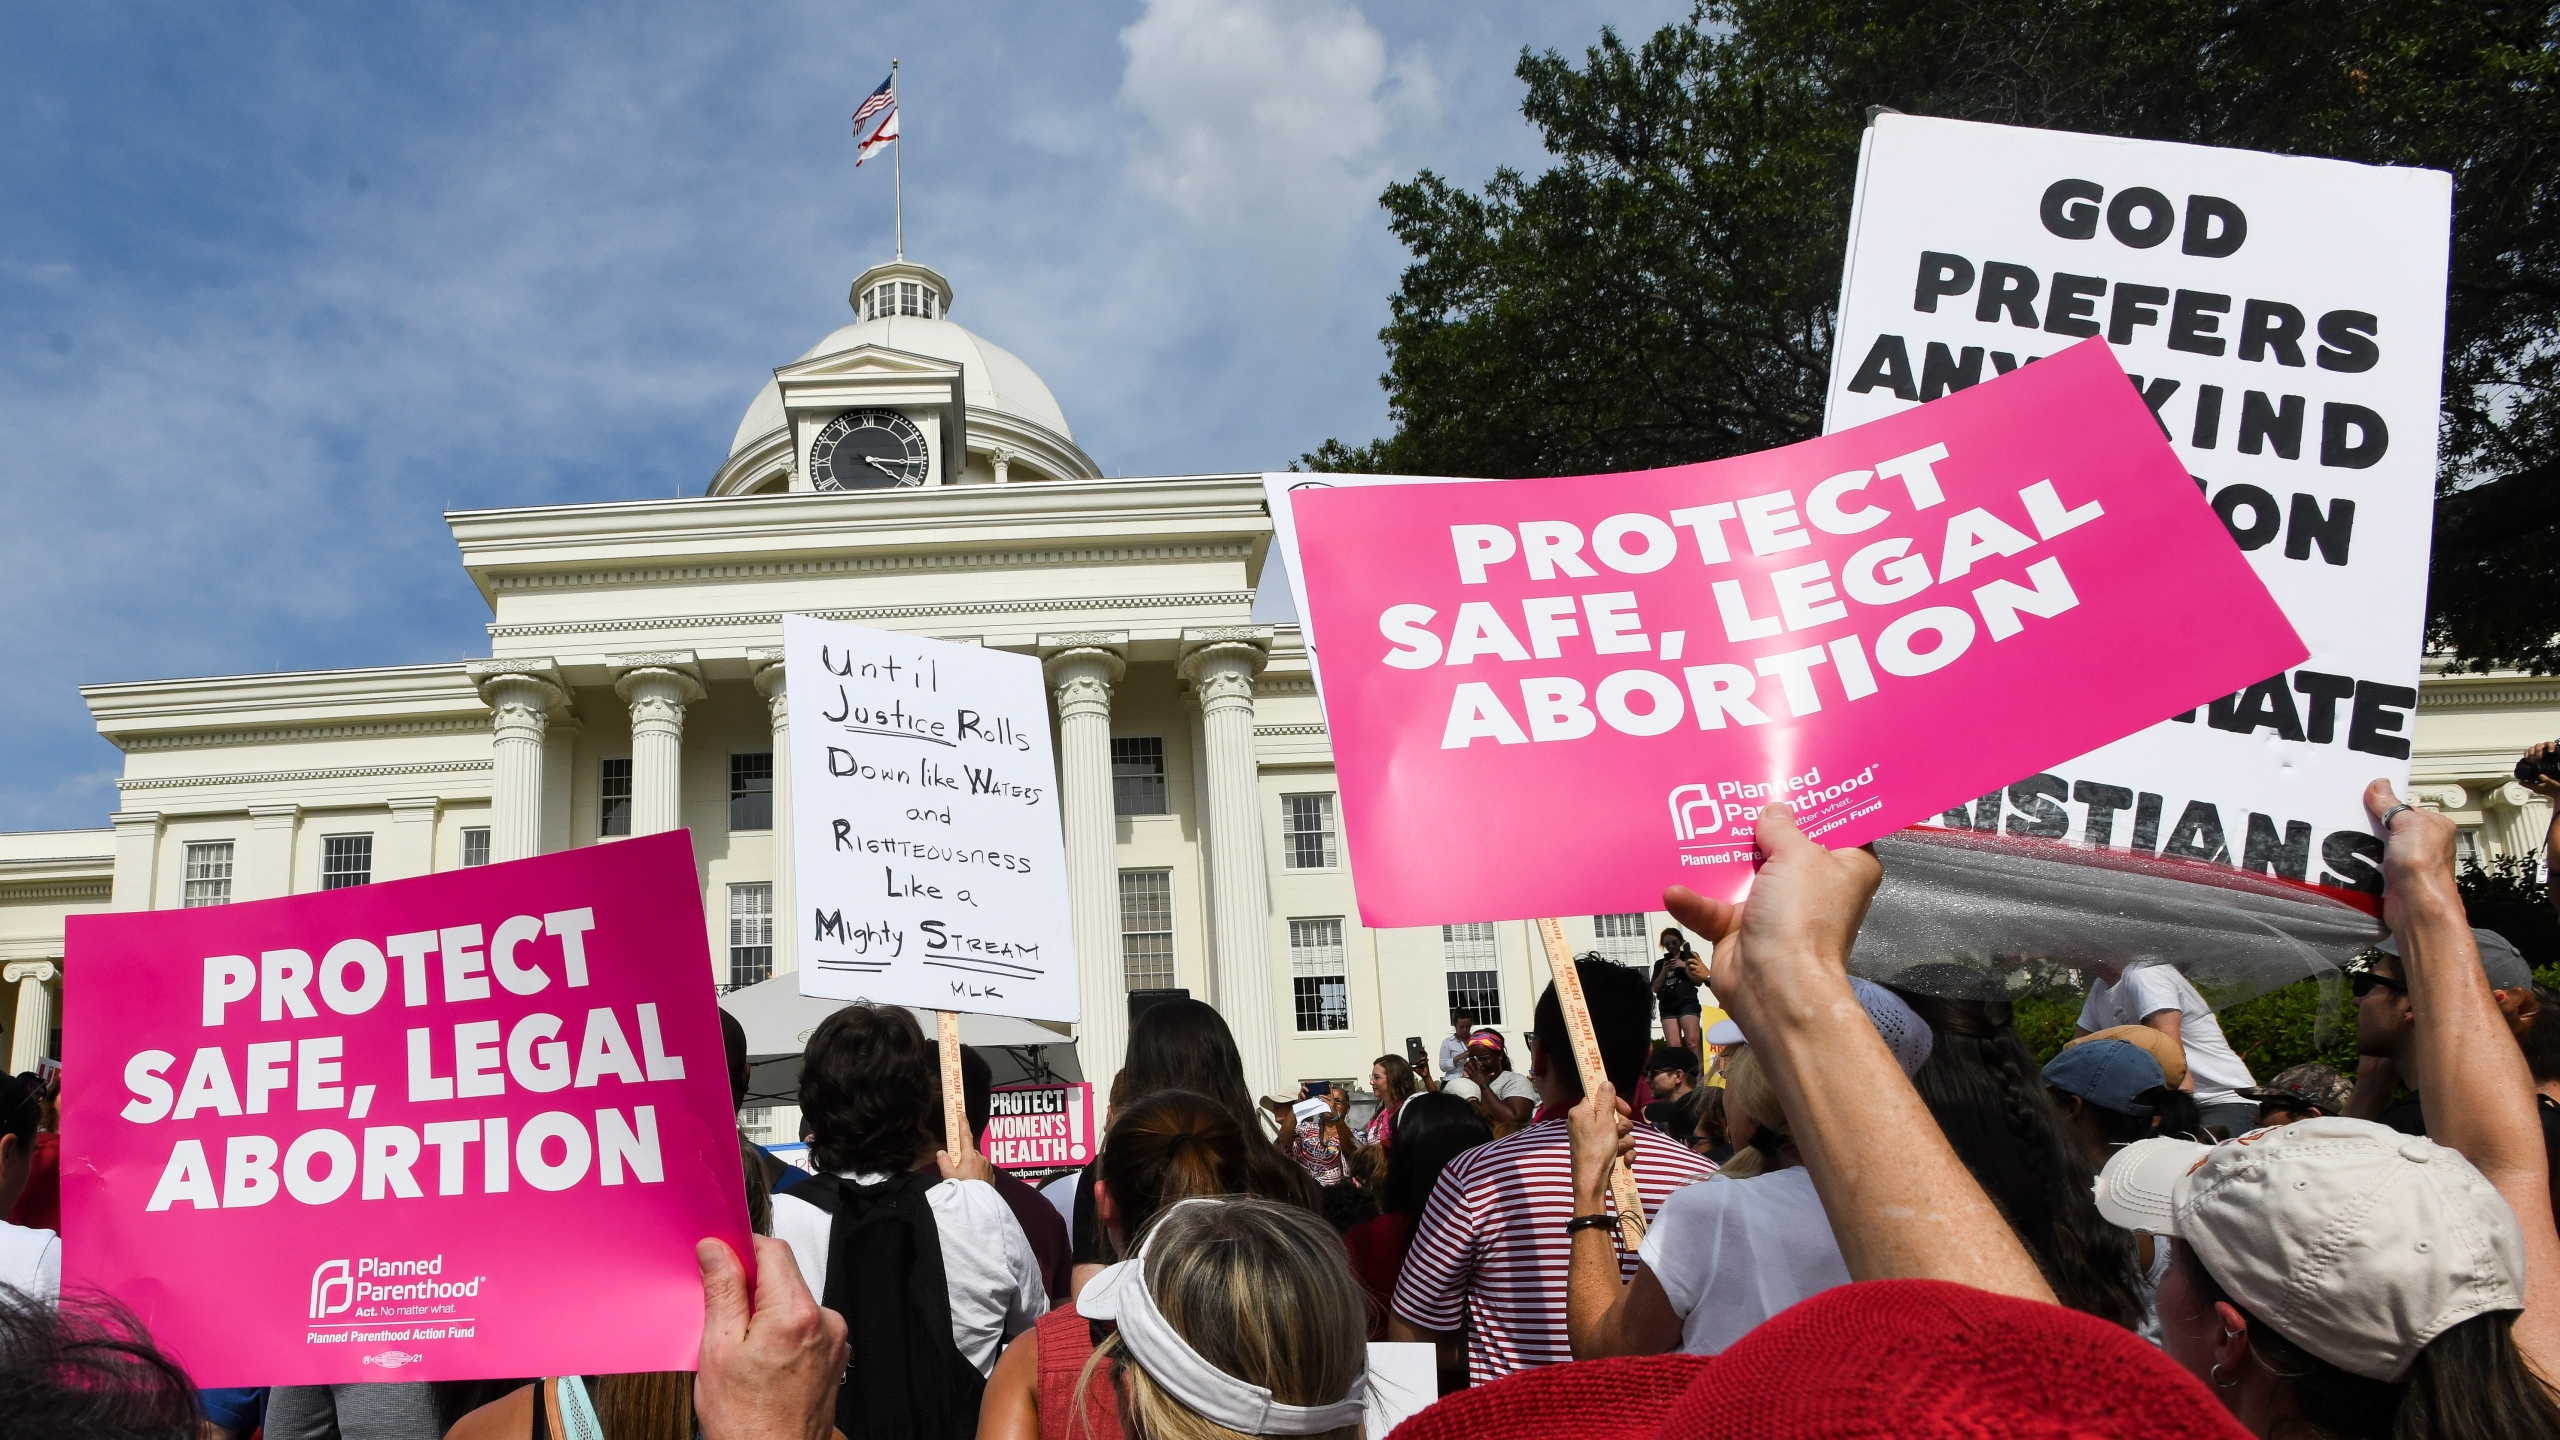 Protestors participate in a rally against Alabama's new abortion ban in front of the state capitol on May 19, 2019. (Credit: Julie Bennett/Getty Images)